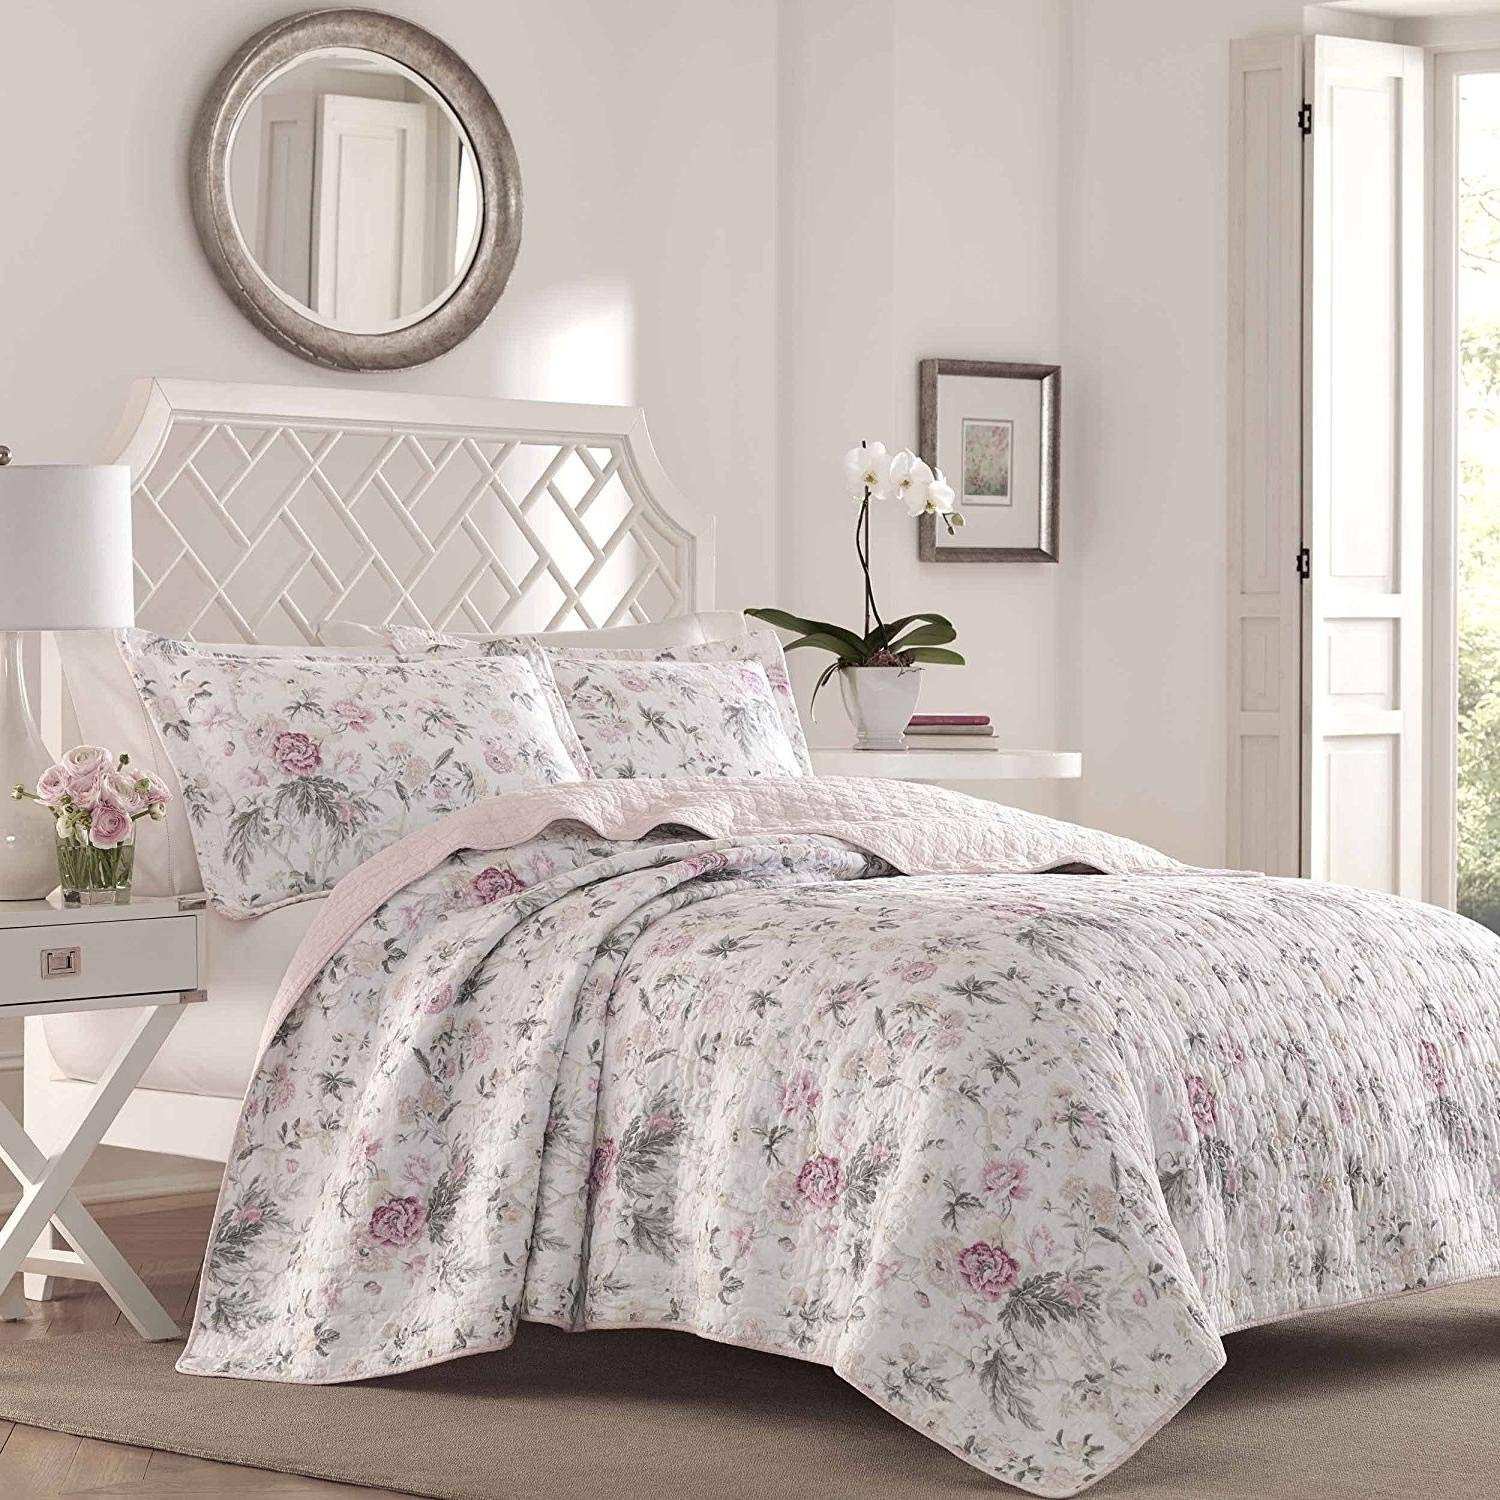 MISC 2pc Color Shabby Chic Twin Size Patchwork Quilt, White Grey Country Floral French, Gray Antique Country Polka Dot, Vintage Cottage Lake House Flowers Patch Work, Cotton